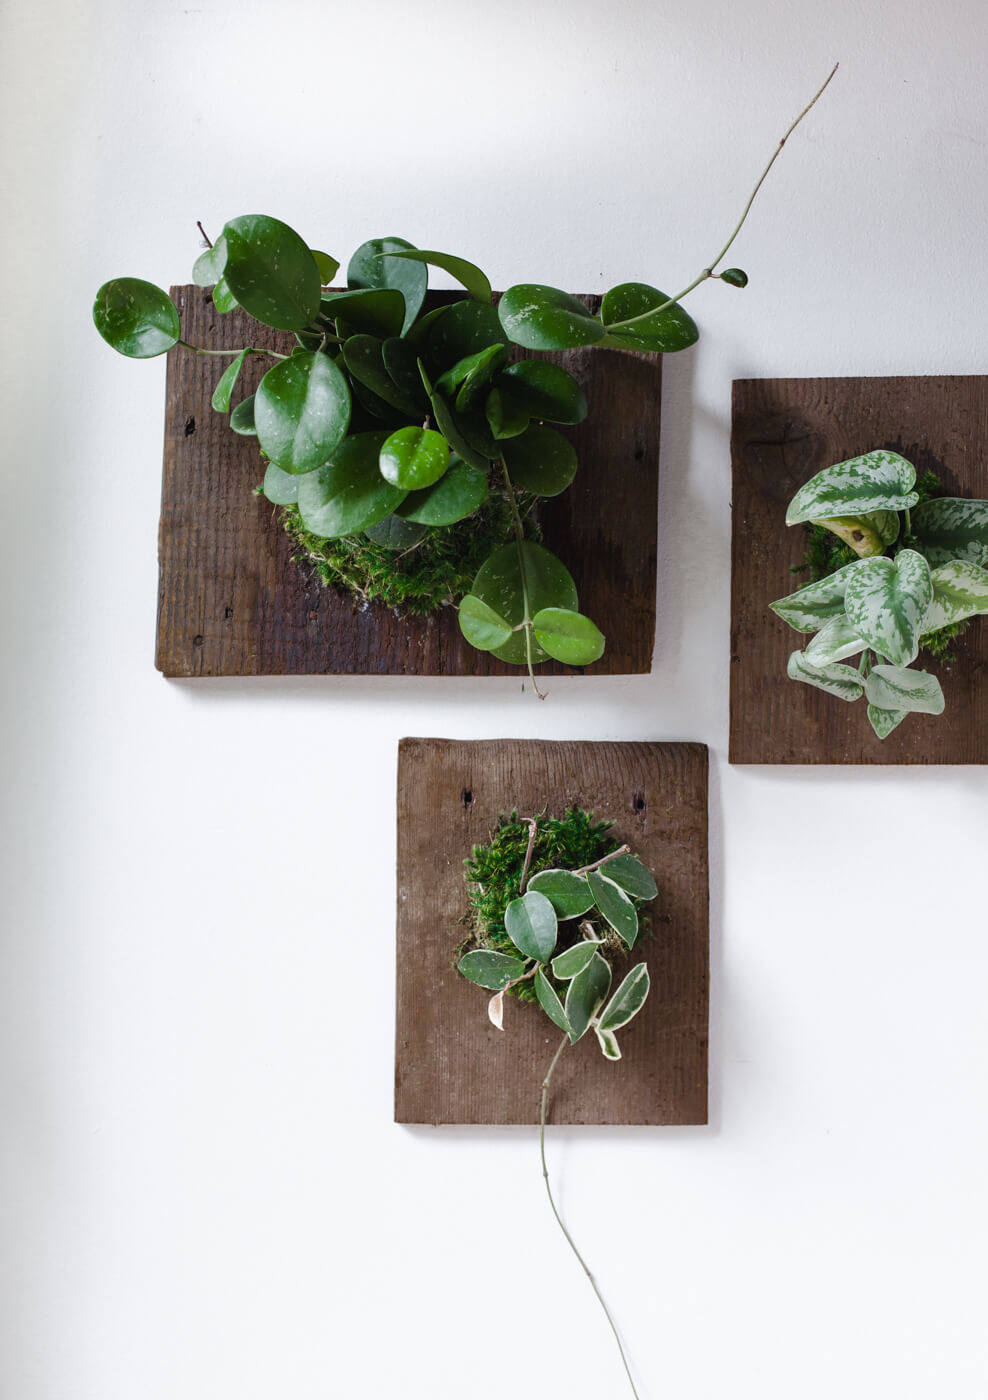 Display Your Plants on Wooden Boards